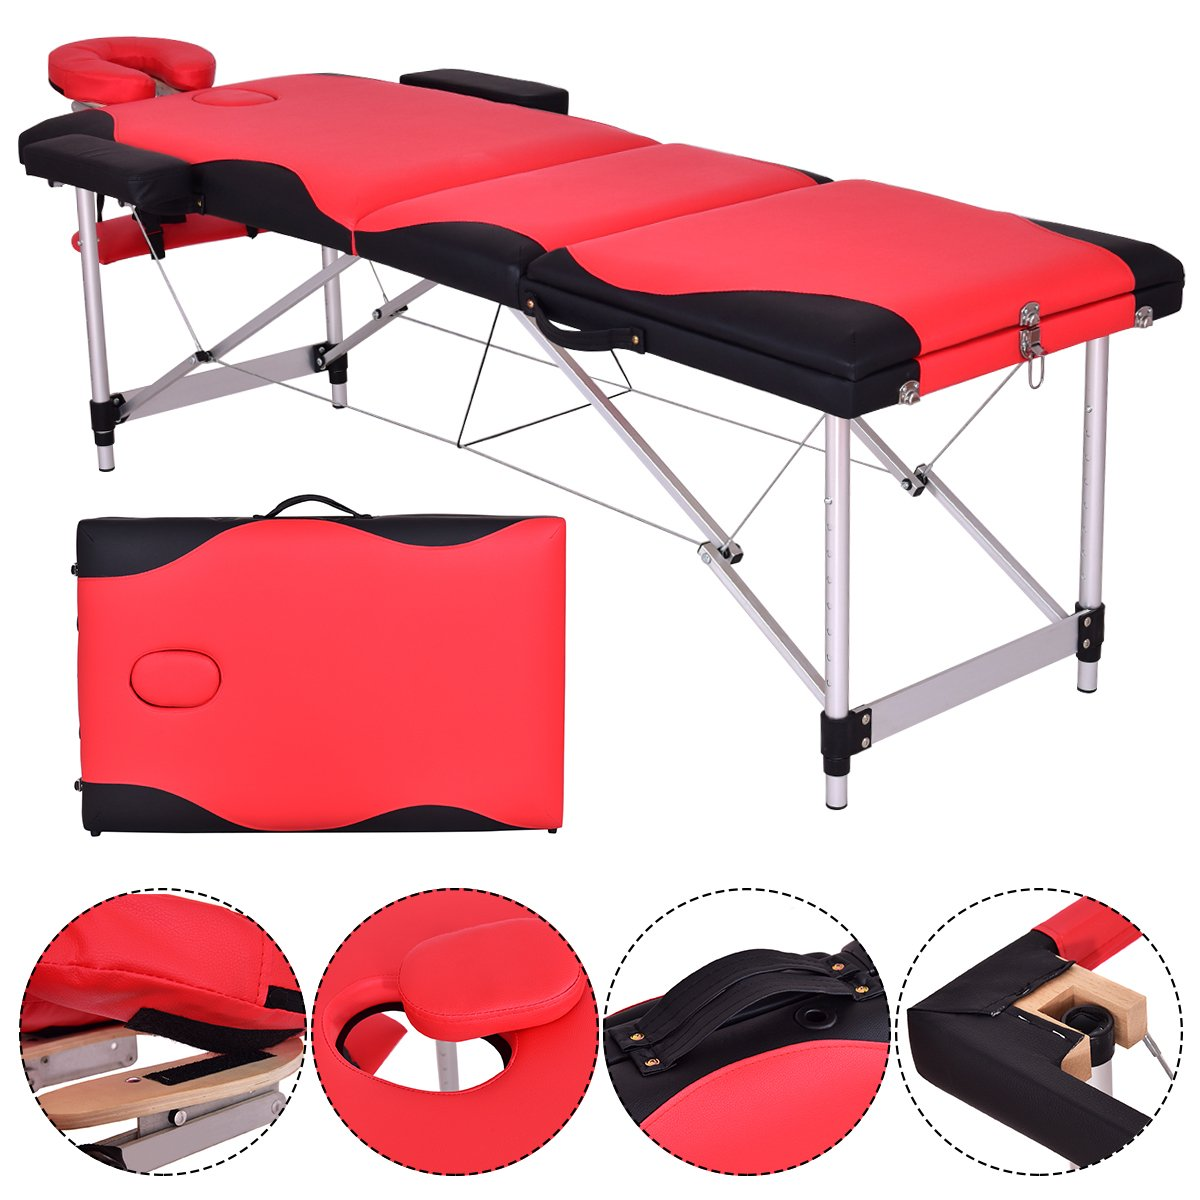 3 Folding Professional Aluminum Massage Table Bed, Reinforcement Portable Adjustable Massage for Salon Beauty Physiotherapy Facial SPA Tattoo Household(black) SAFEPLUS